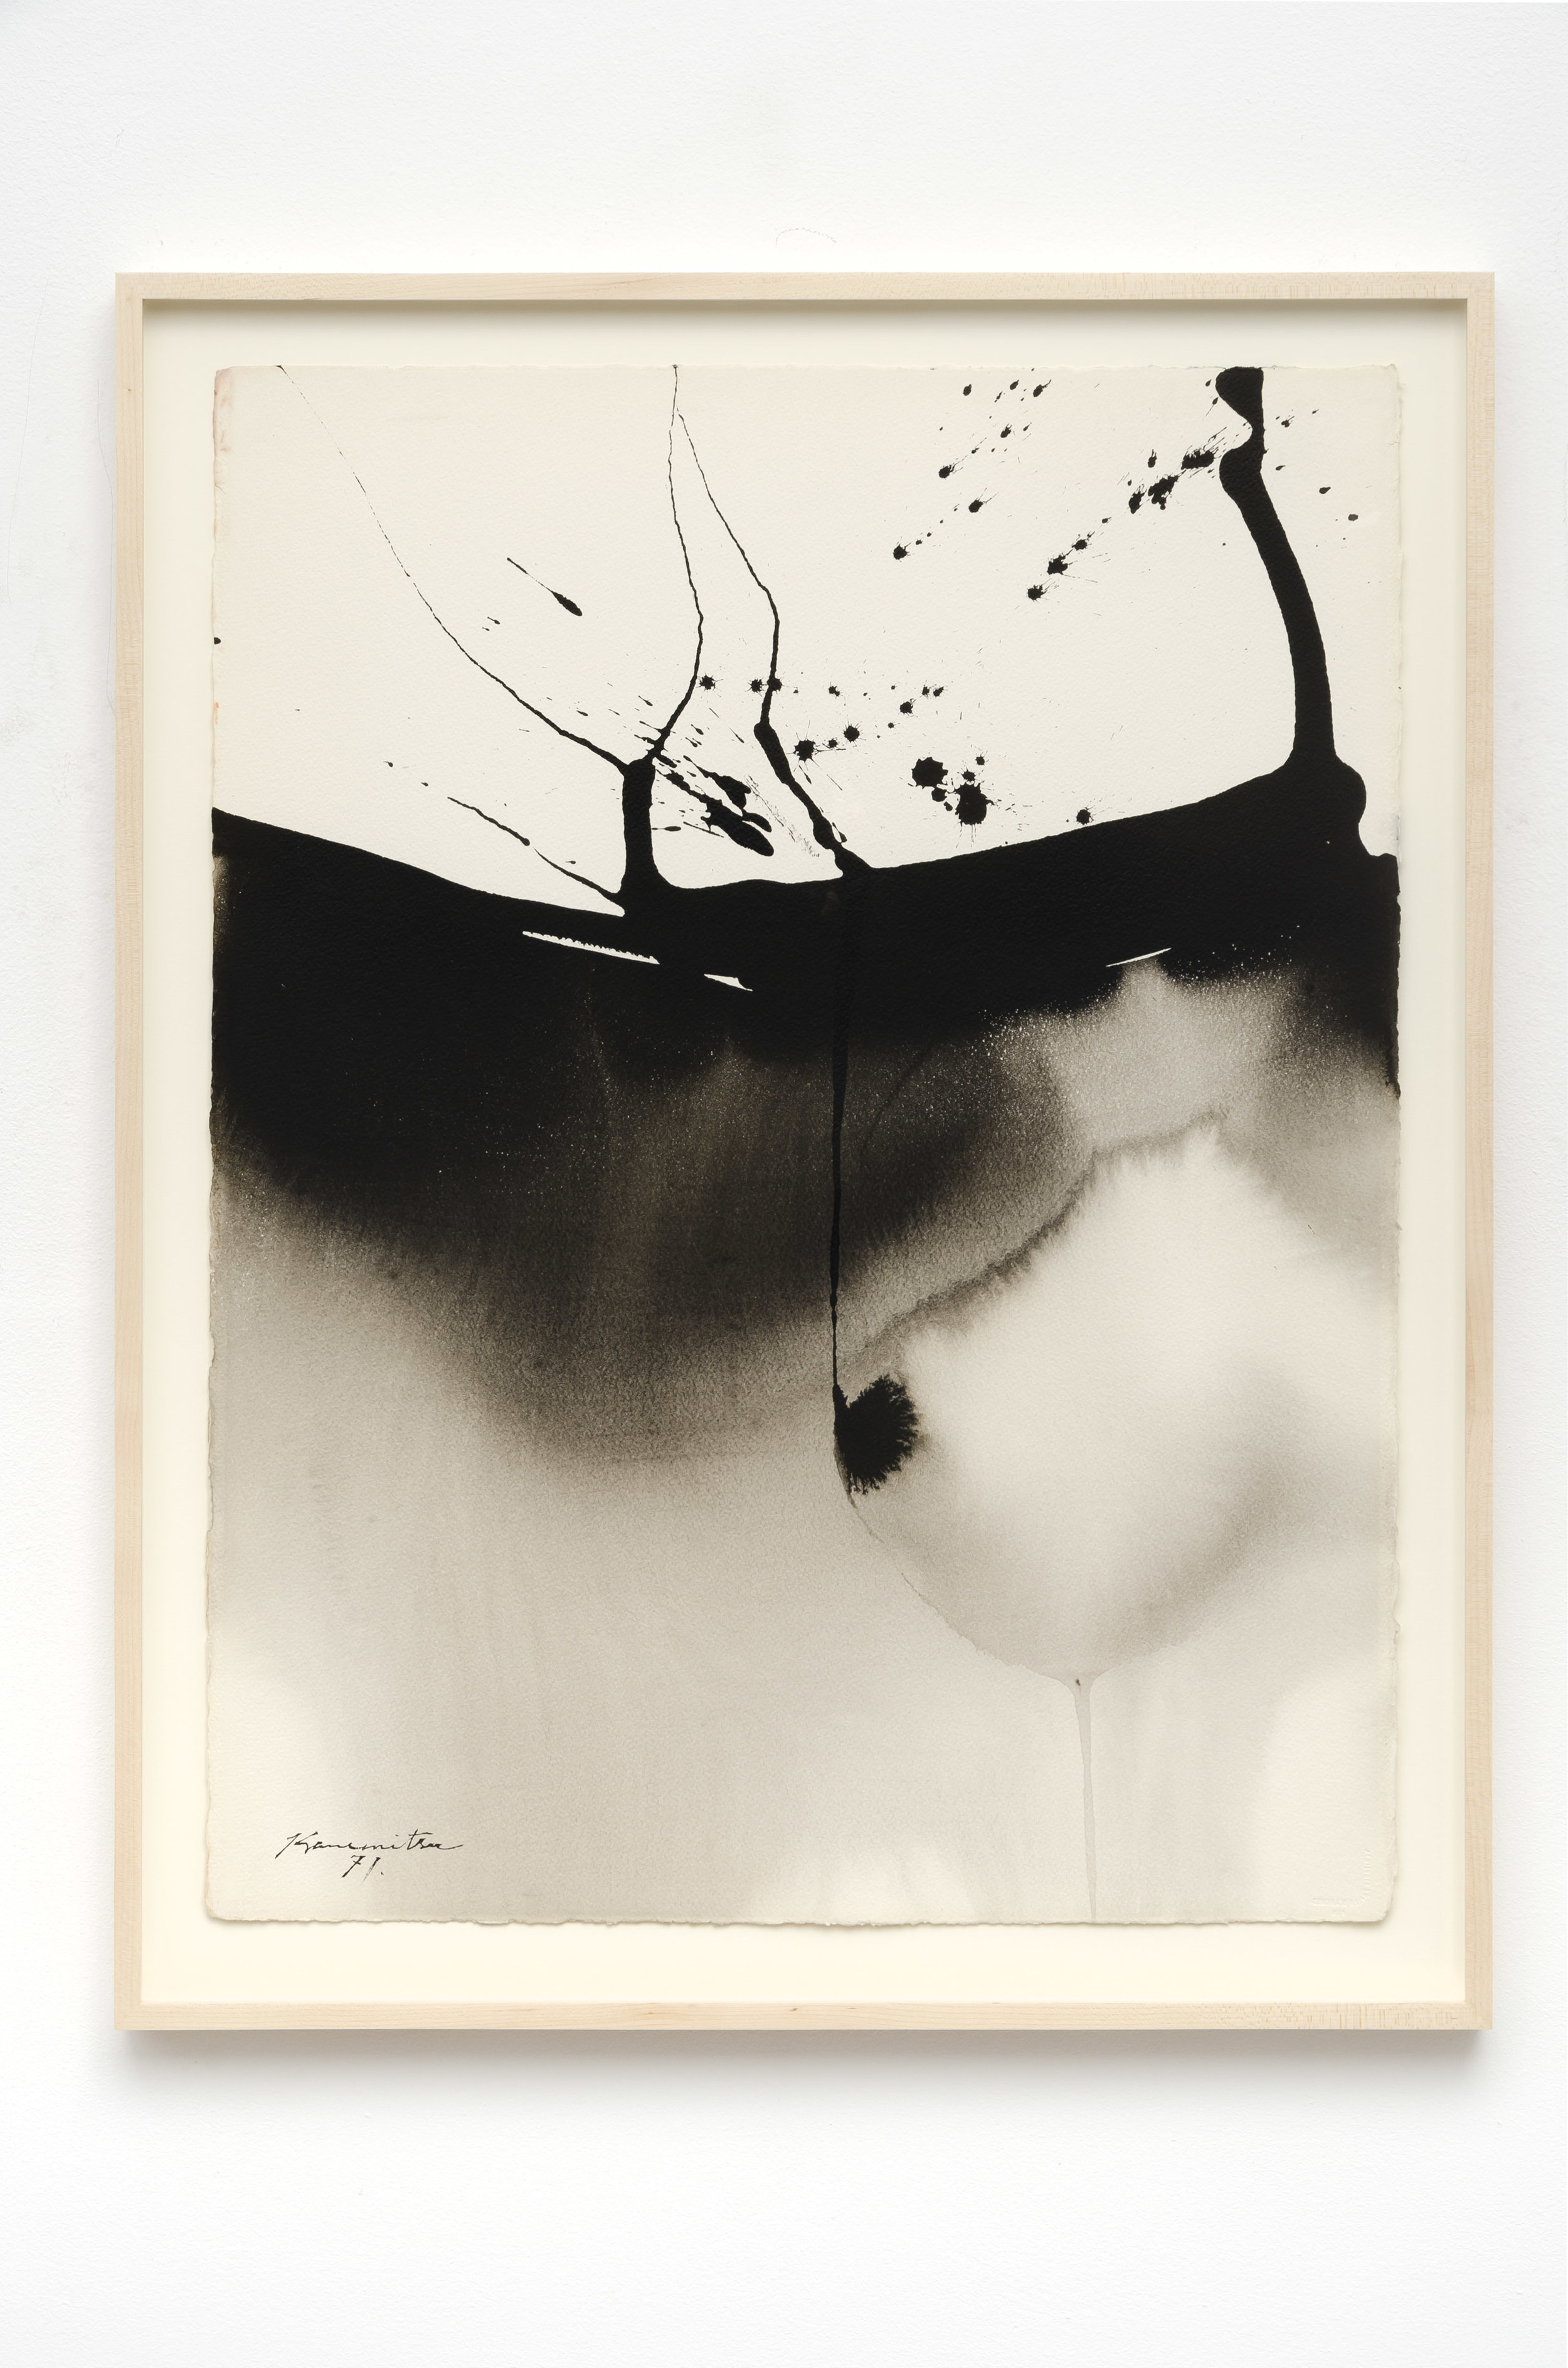 Matsumi Kanemitsu (1922-1992)   Untitled , 1971 sumi ink on paper 33 3/4 x 26 1/4 inches; 85.7 x 66.7 centimeters